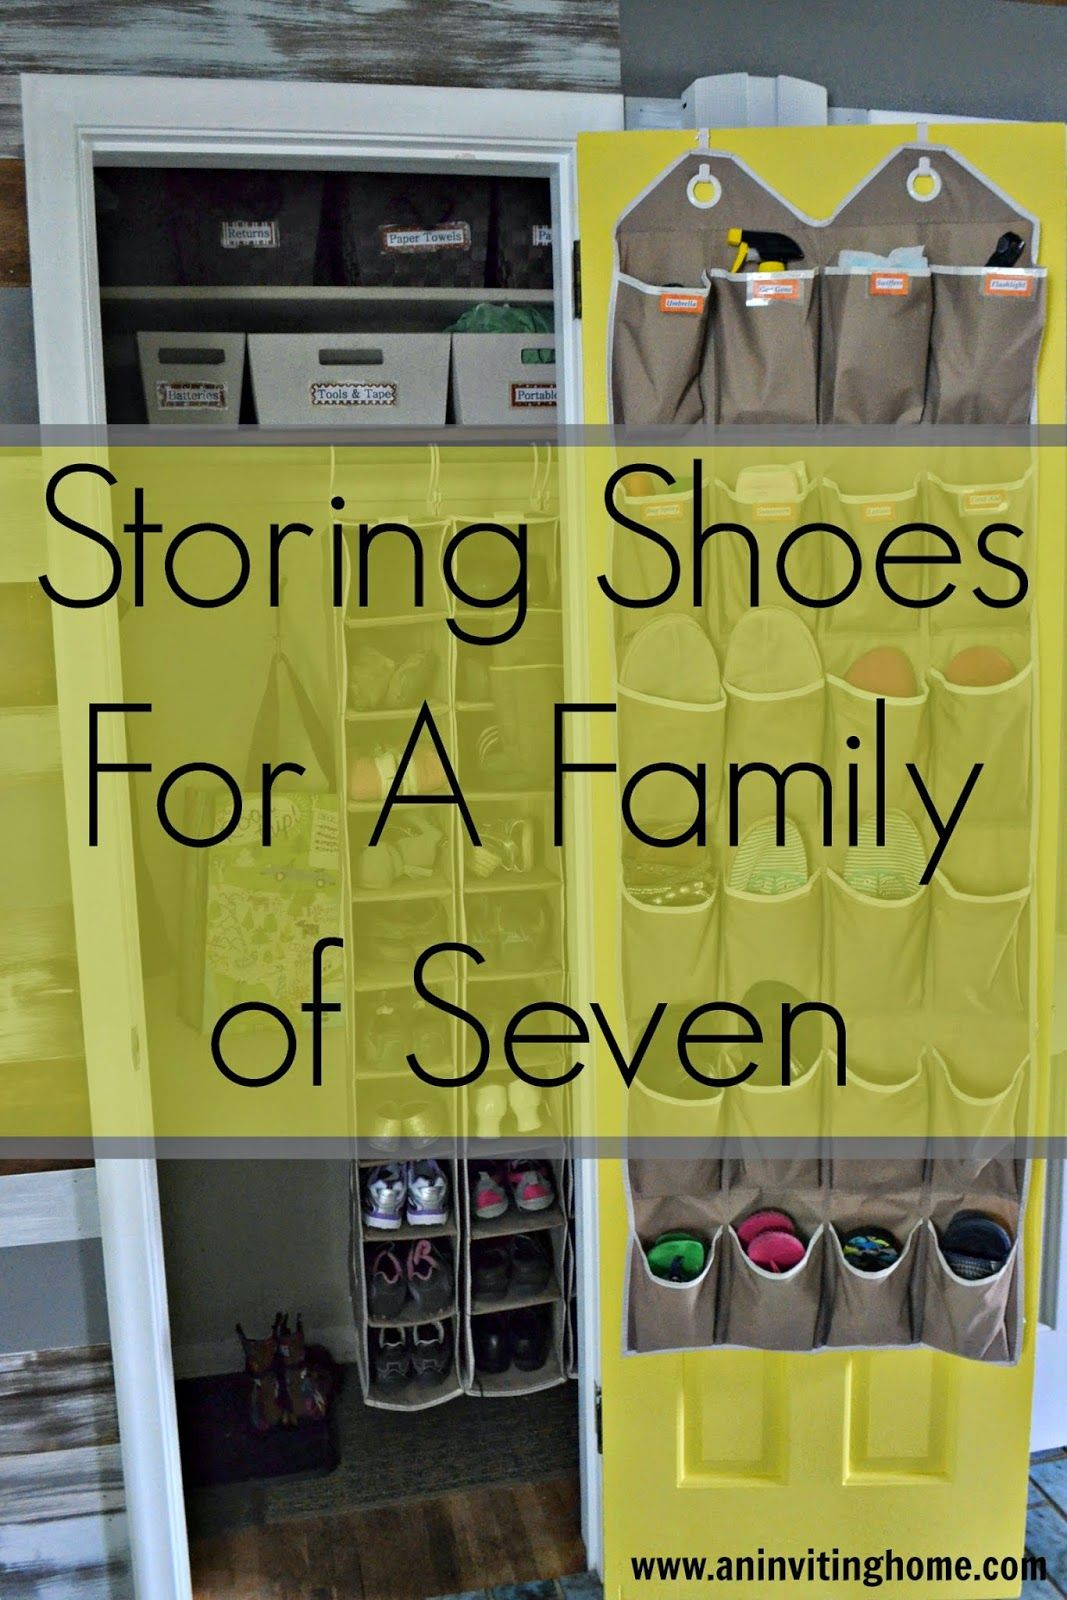 Storing Shoes For A Family Of Seven Smallclosetstorage Nomudroom Govertical